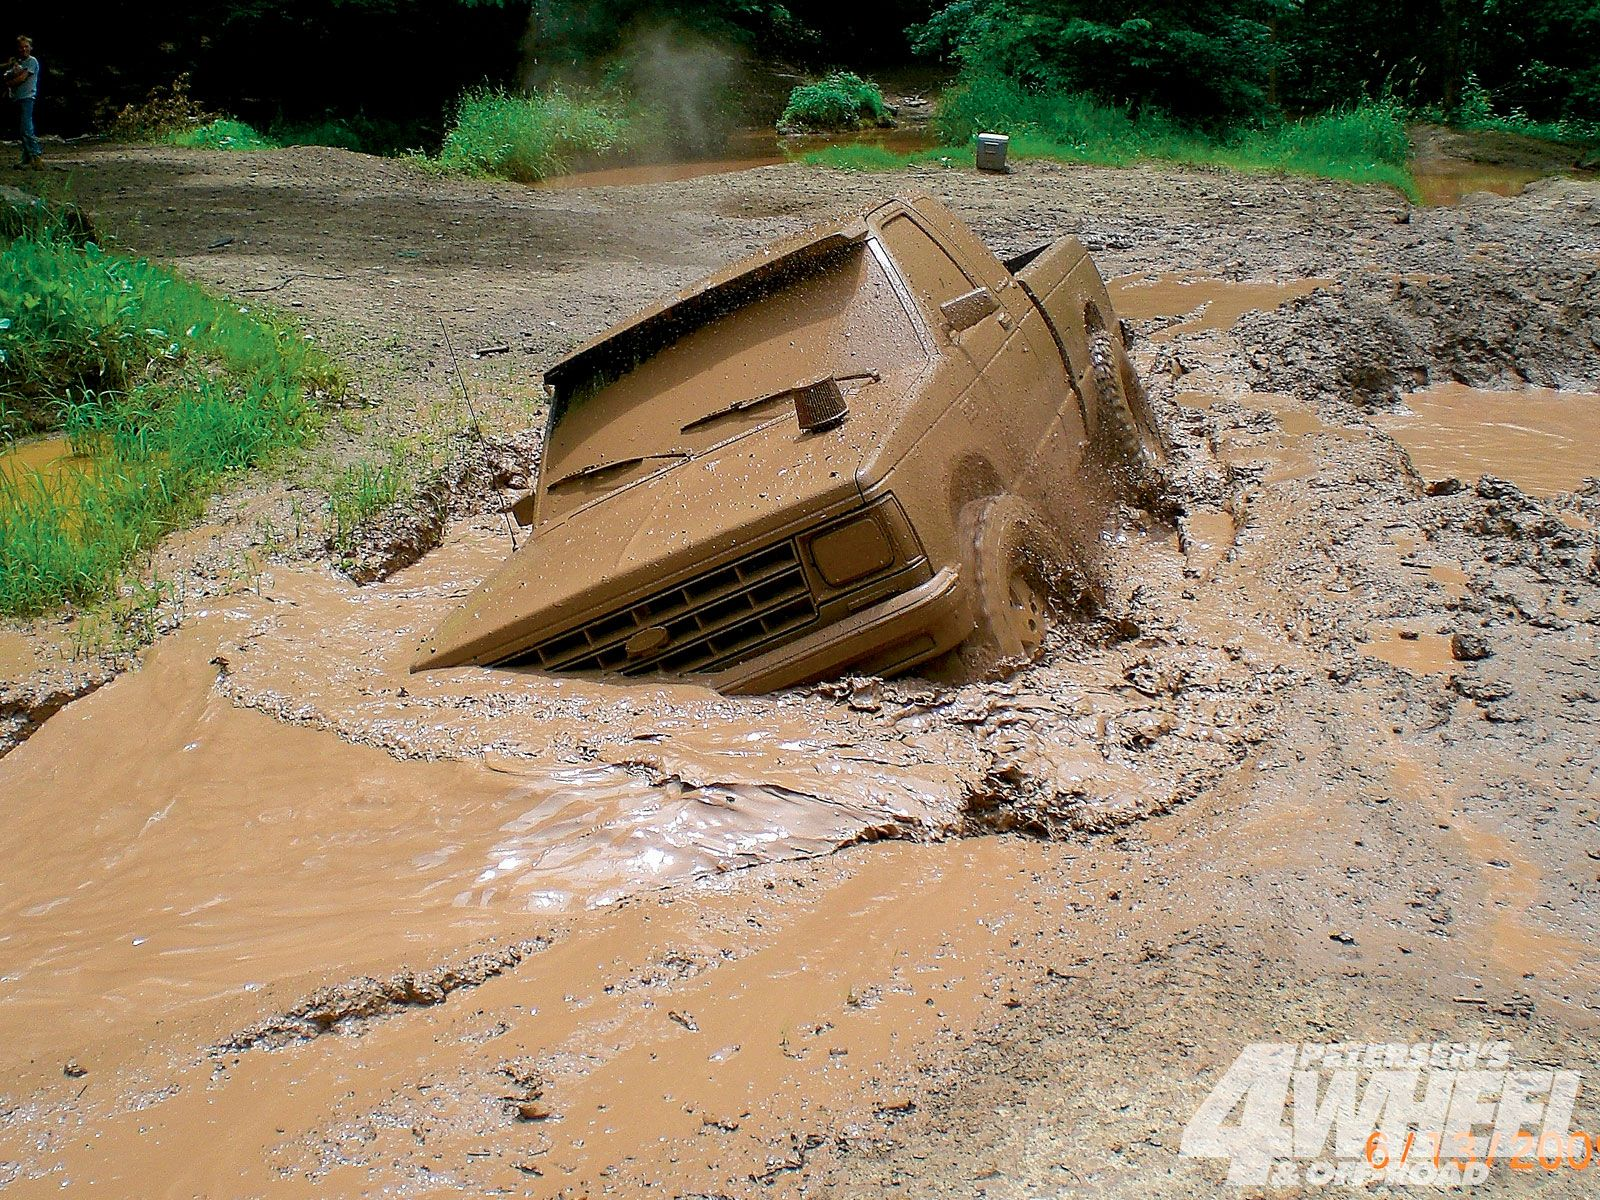 Blogged Down: A bogged down blog, stuck in the mud - Craig ...